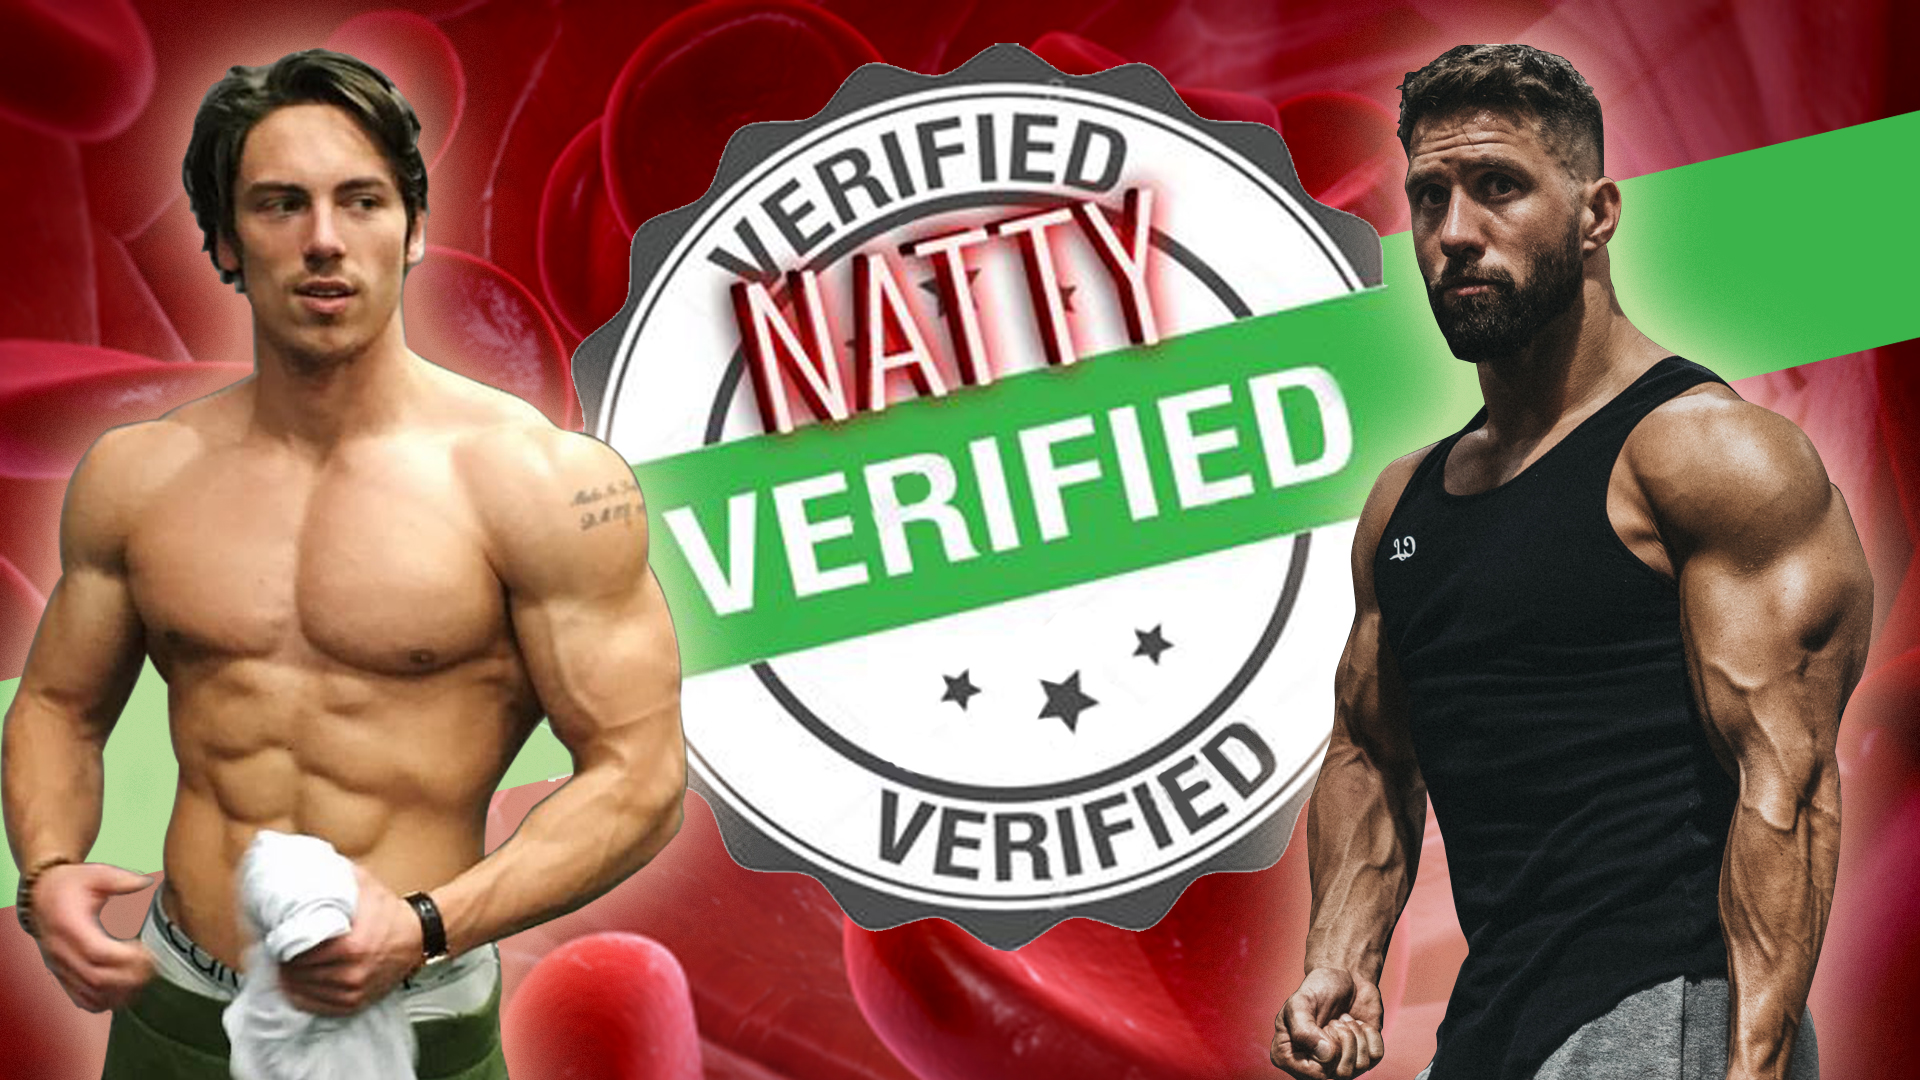 Kinobody and Julian Smith Natty Verified